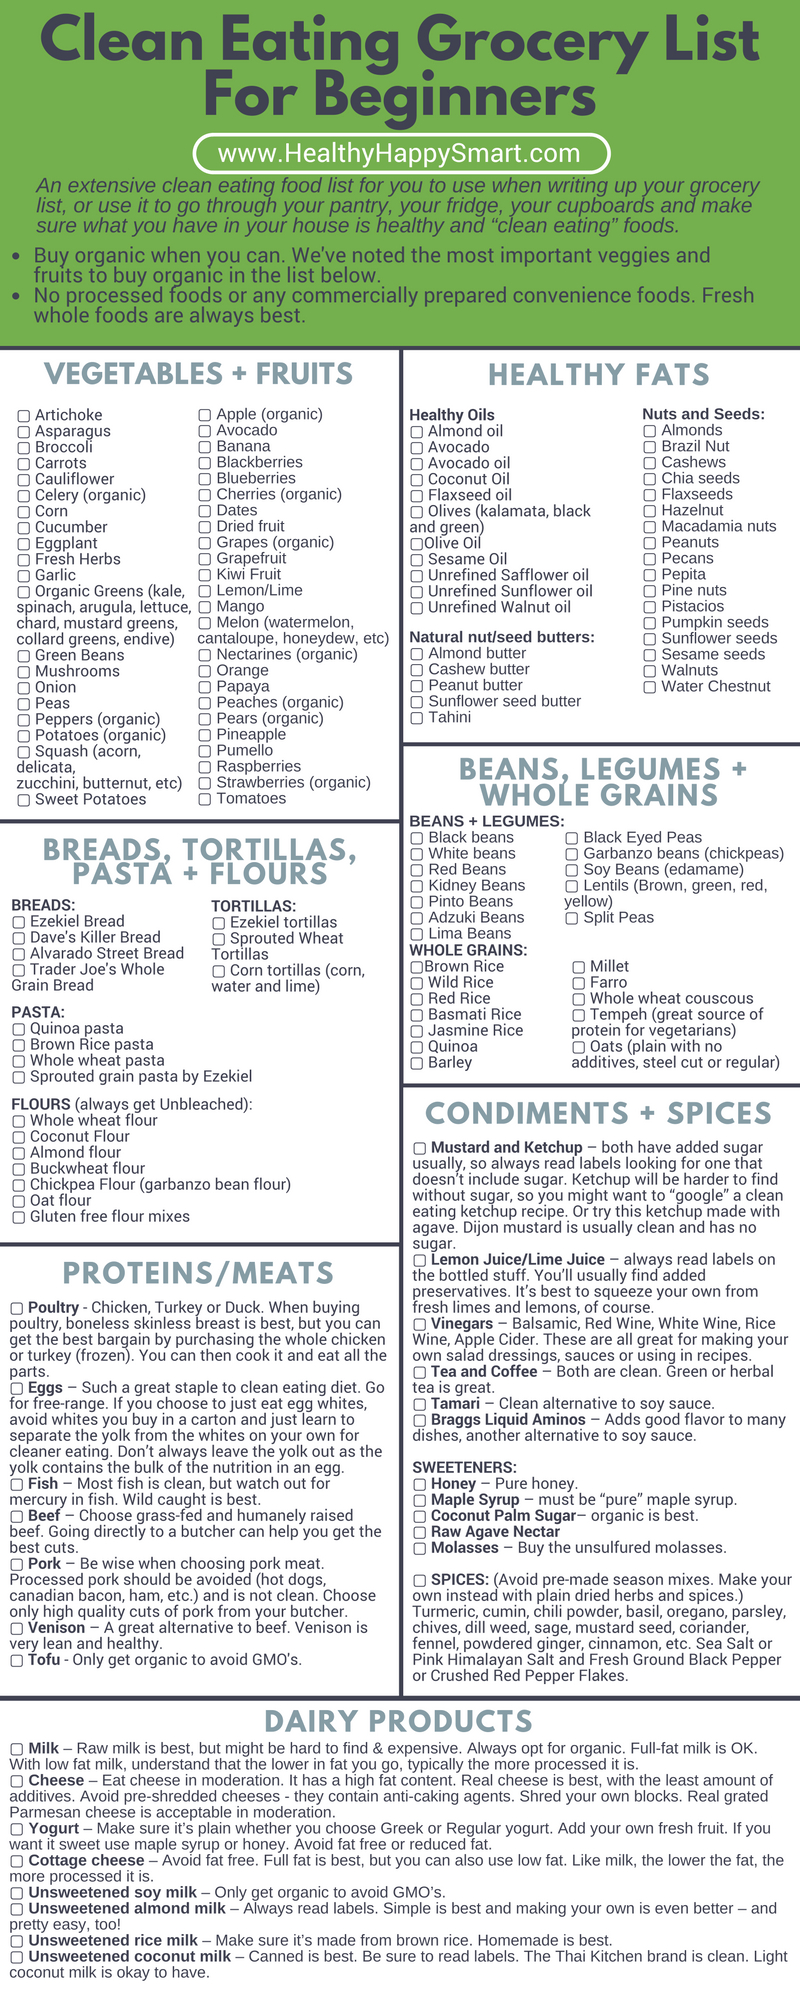 Clean Eating Grocery List • Healthy Food List • Healthy.happy.smart. - Gluten Free Food List Printable